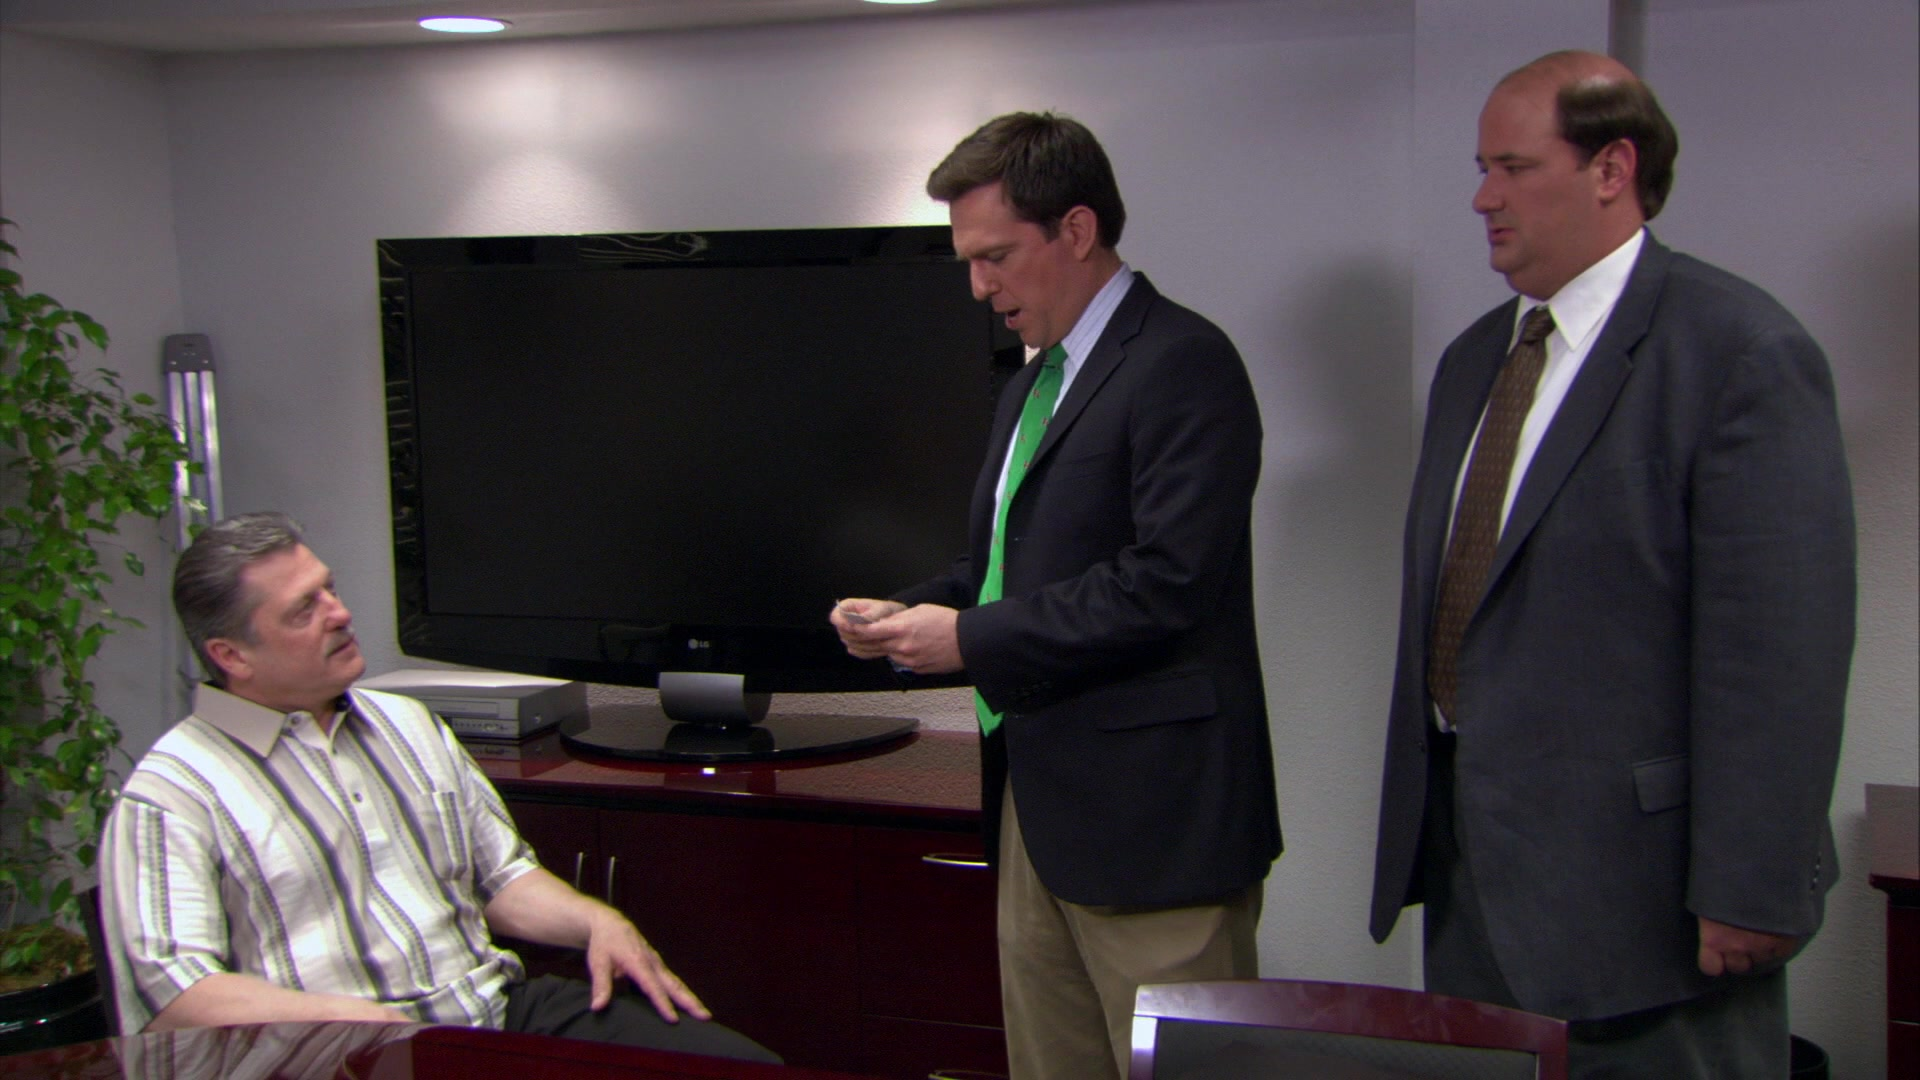 LG Flat TV in The Office – Season 4, Episode 14,